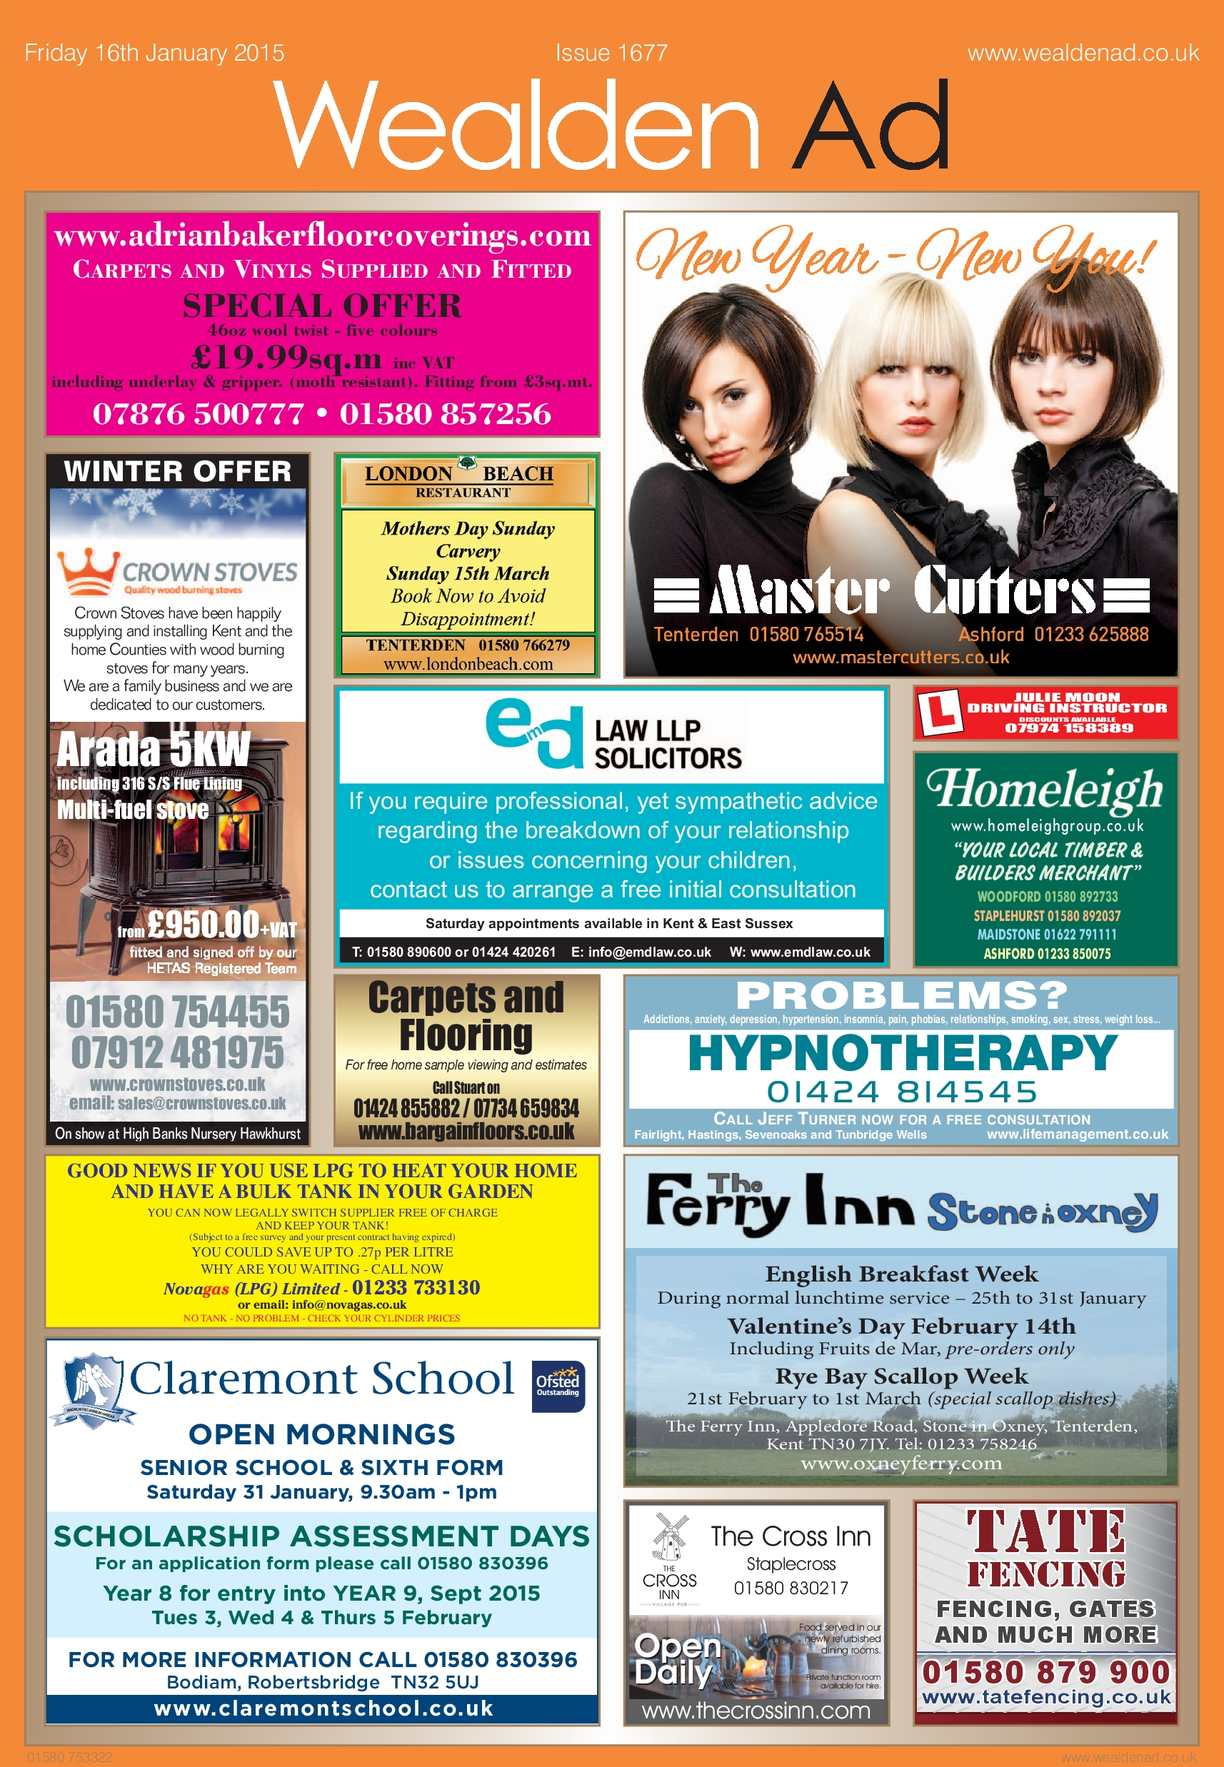 Calaméo - Wealden Advertiser 16/1/2015